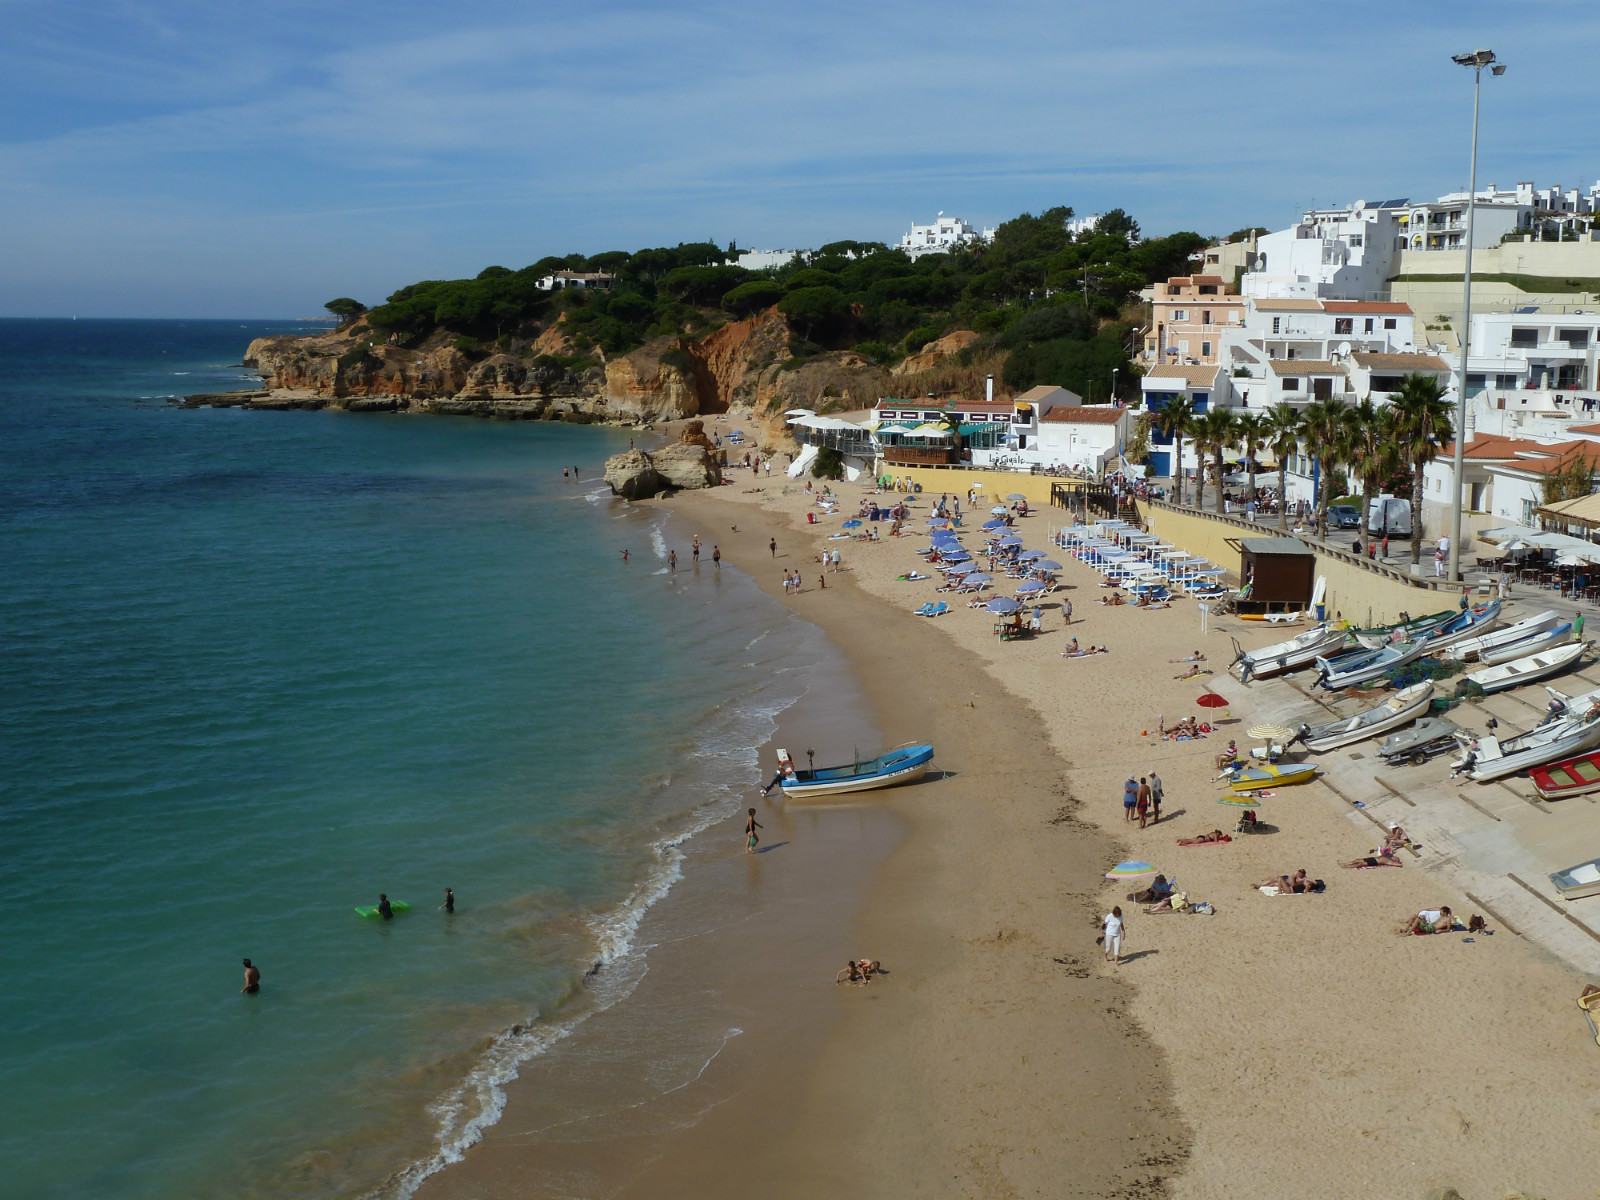 Another local & beautiful Olhos Agua fisherman's beach & town is worth a visit.